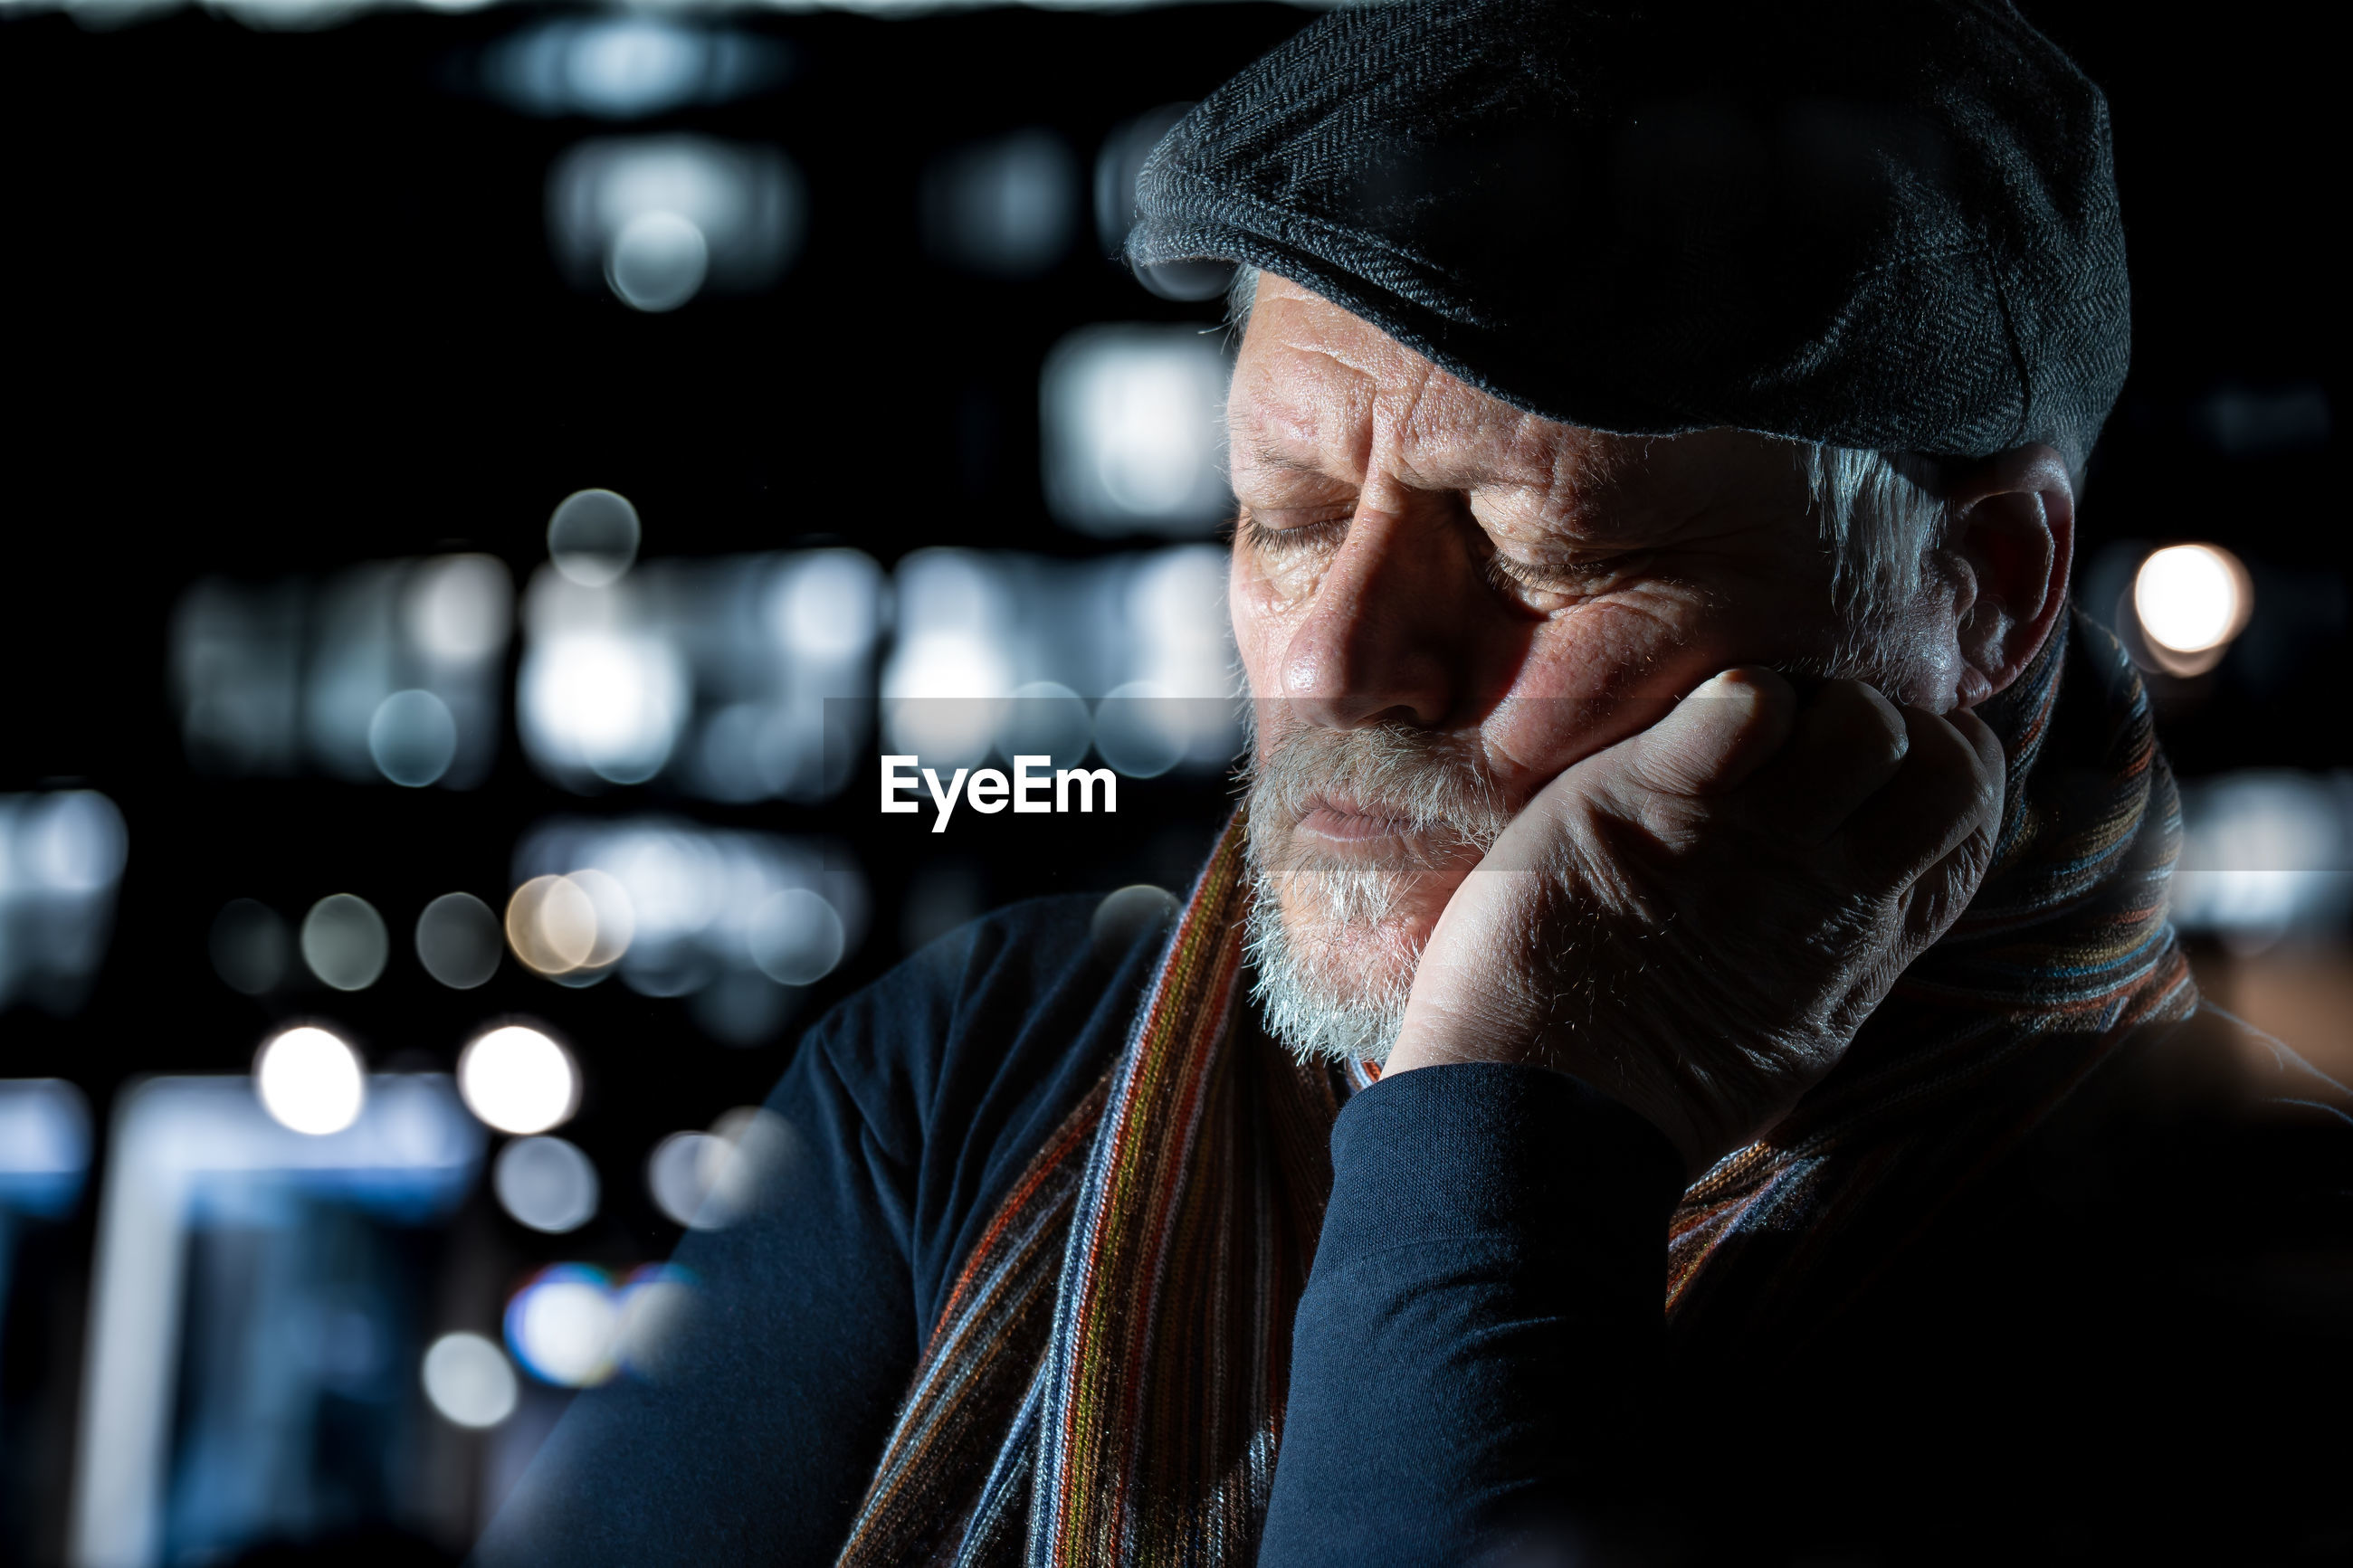 An older man is sitting outside at night. he is tired, rests his head on one hand and sleeps.